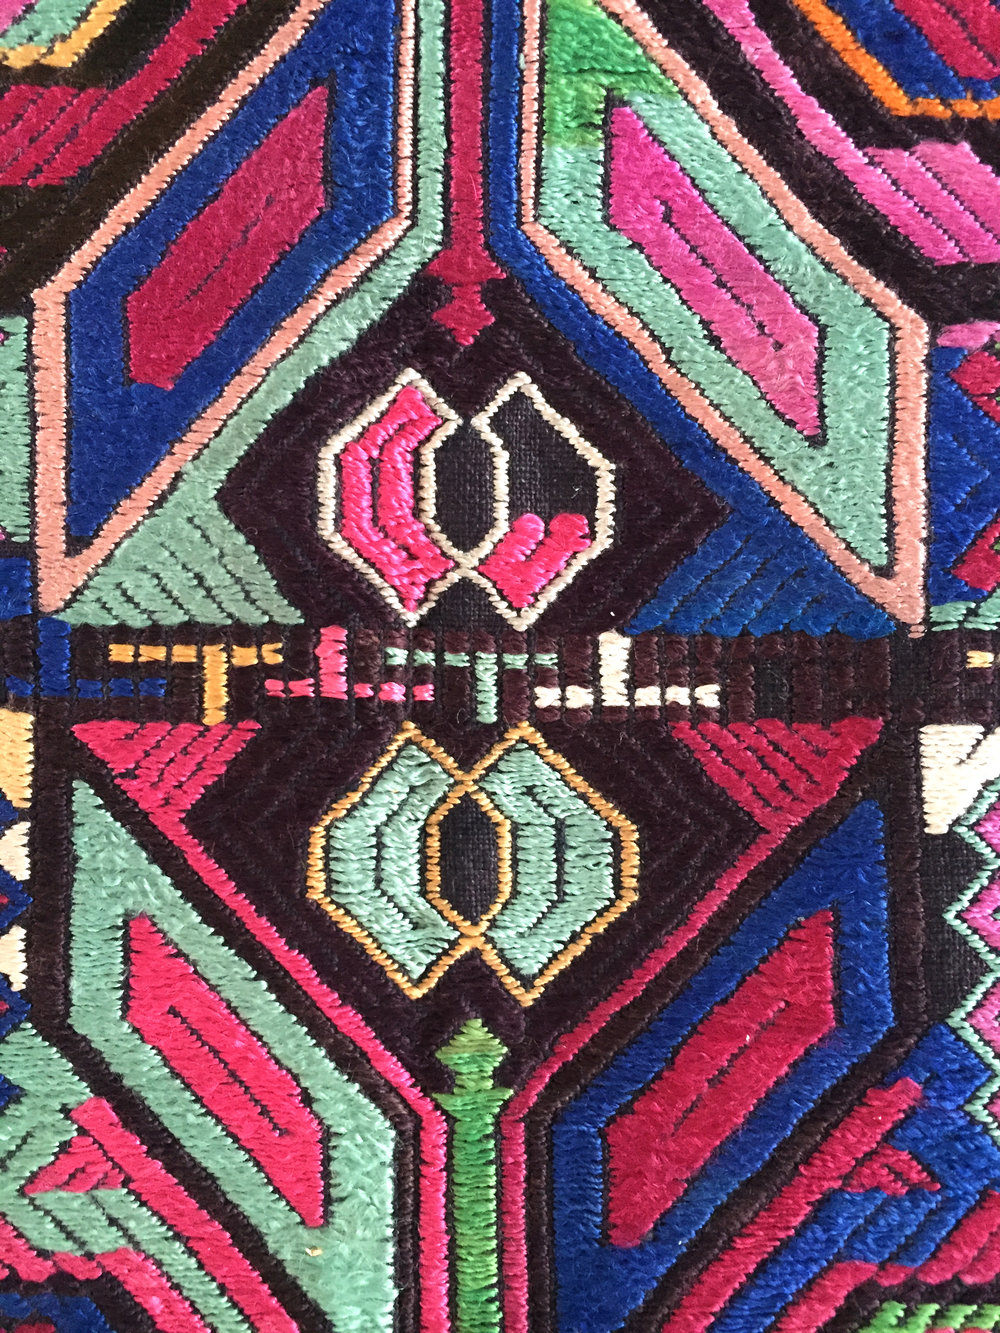 Miao embroidery with satin stitch from Guizhou, China.Yang Wen Bin Collection.